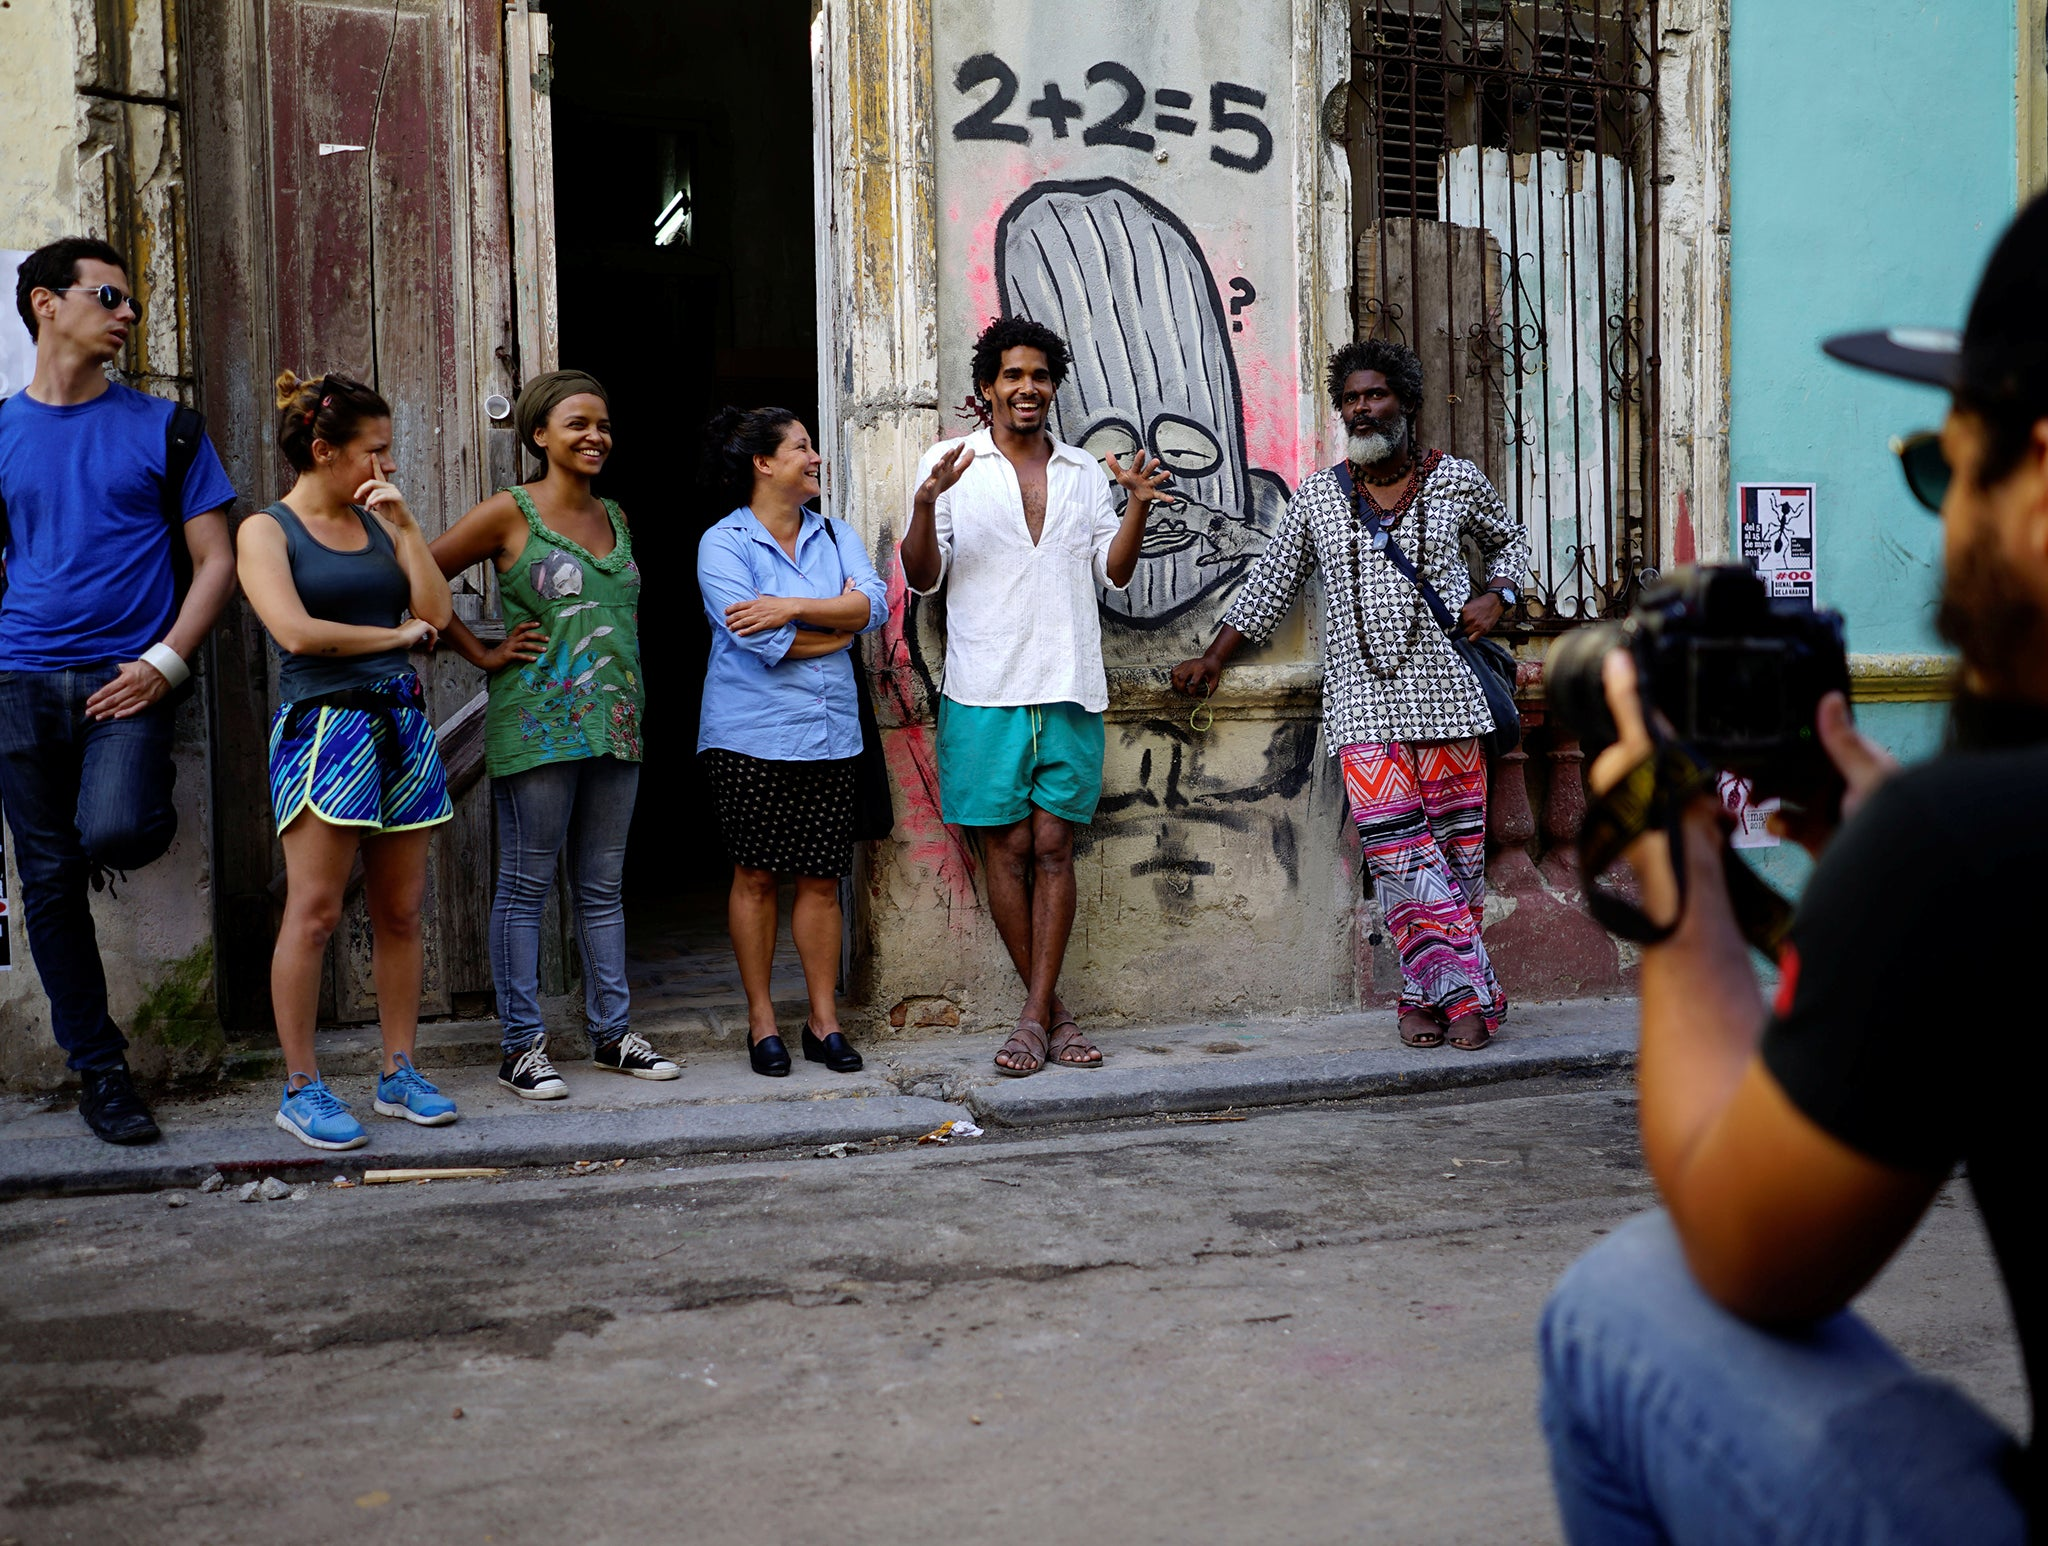 Cuban artists take matters into their own hands after